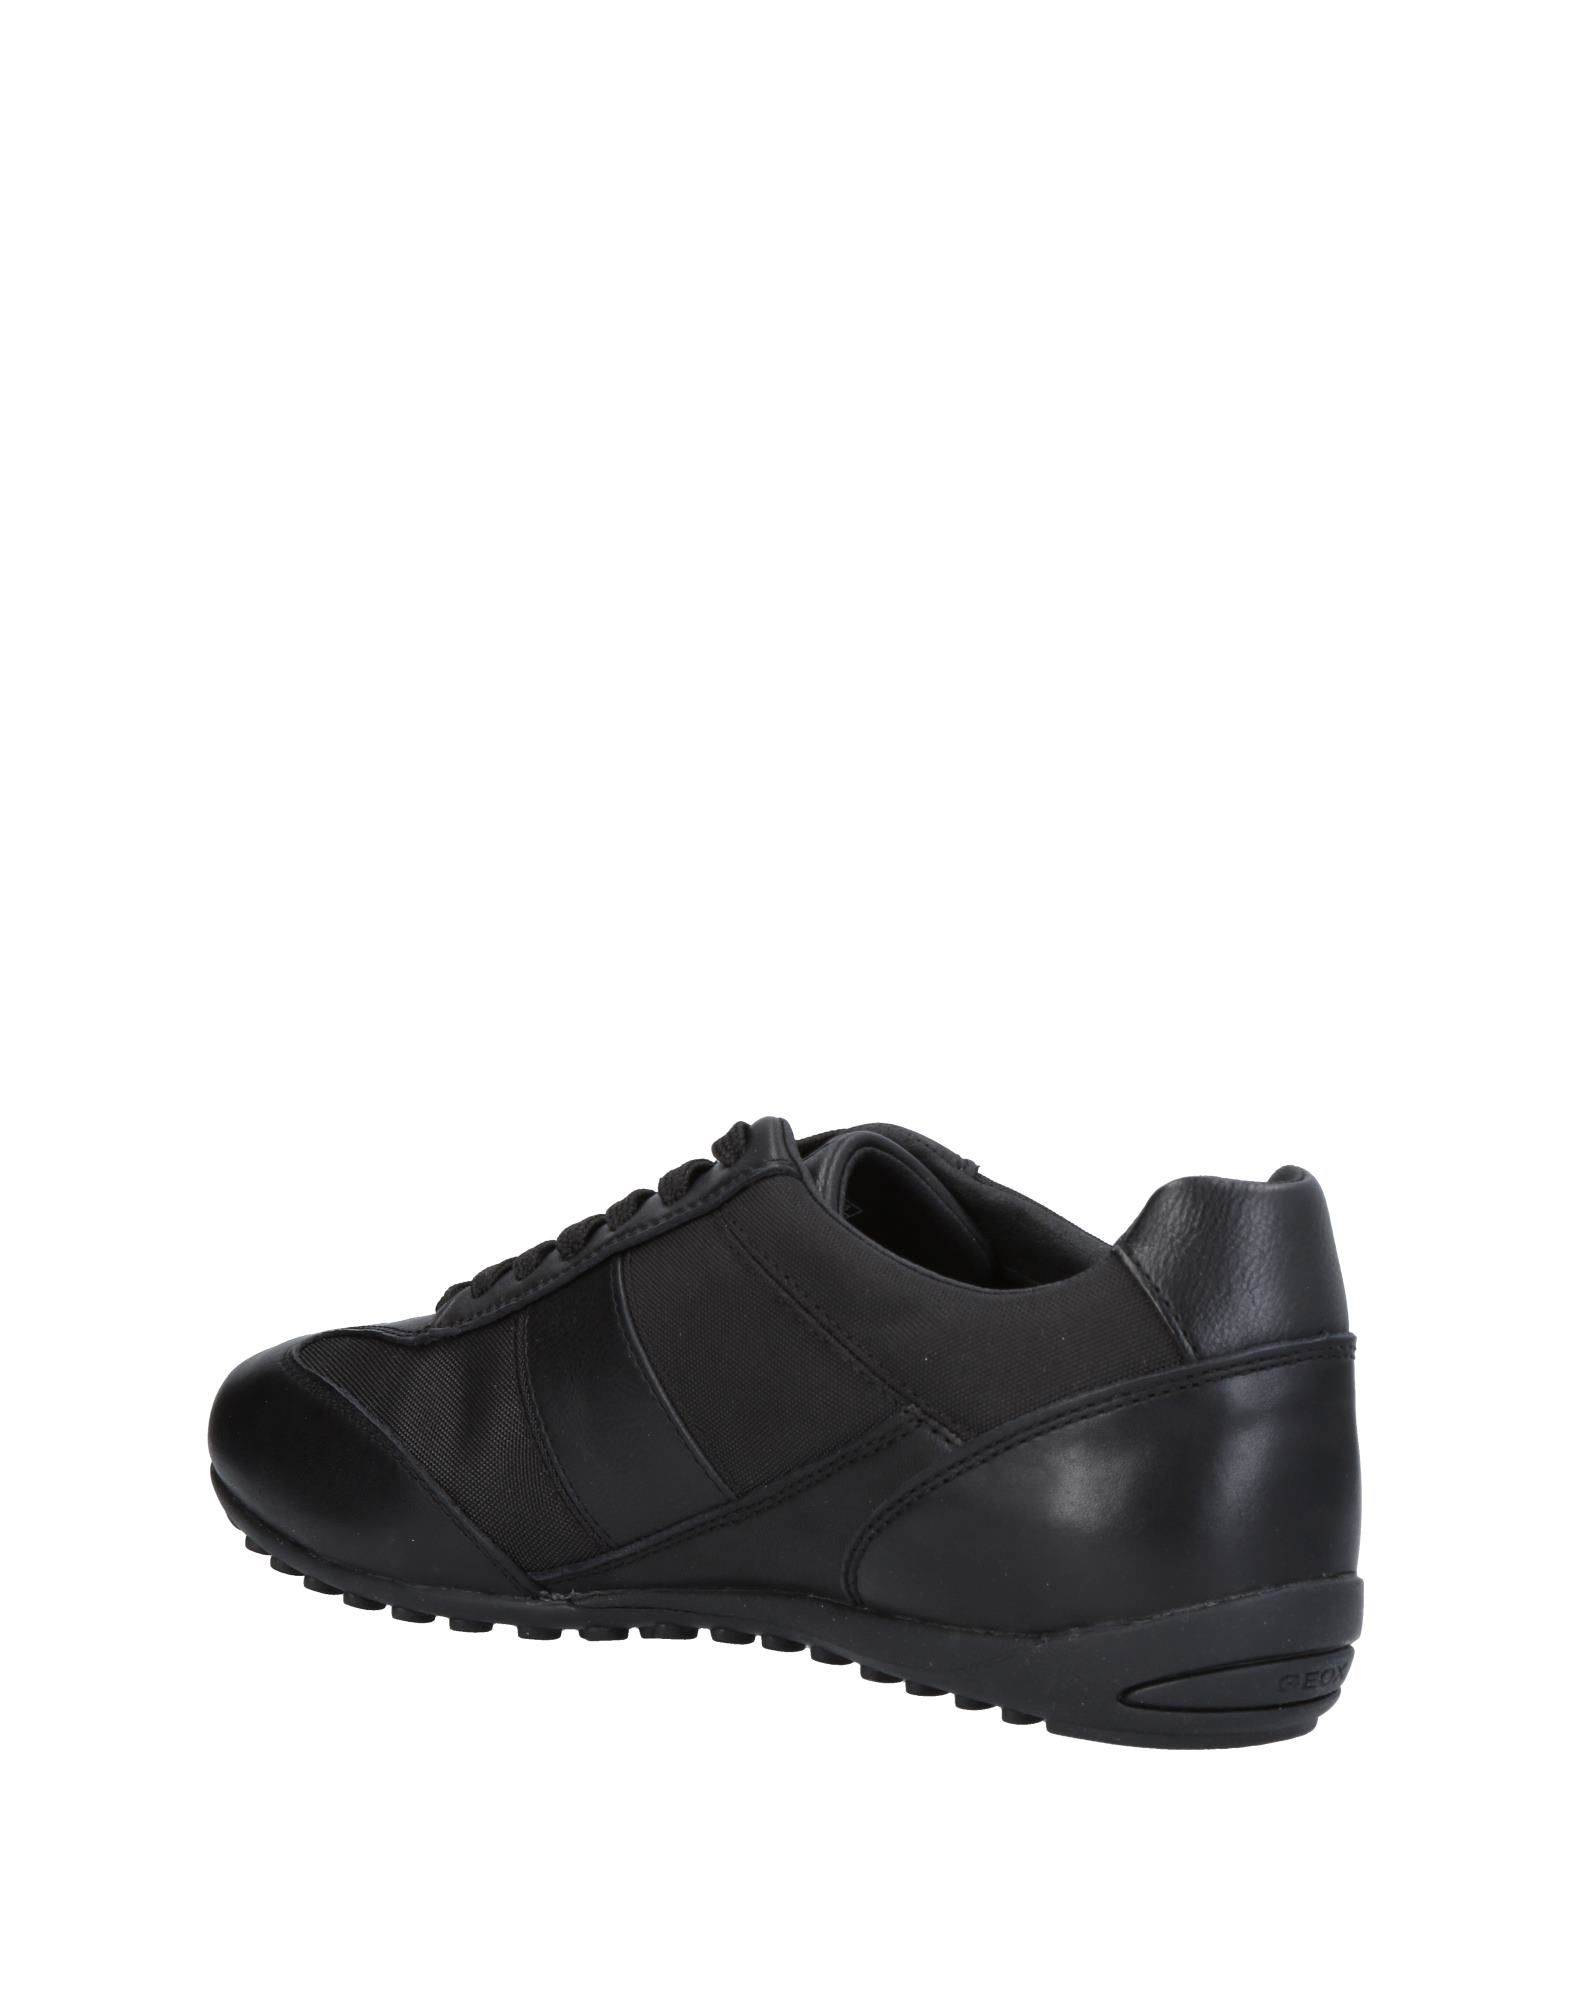 Geox Sneakers  - Men Geox Sneakers online on  Sneakers Canada - 11427366EU 32a6de